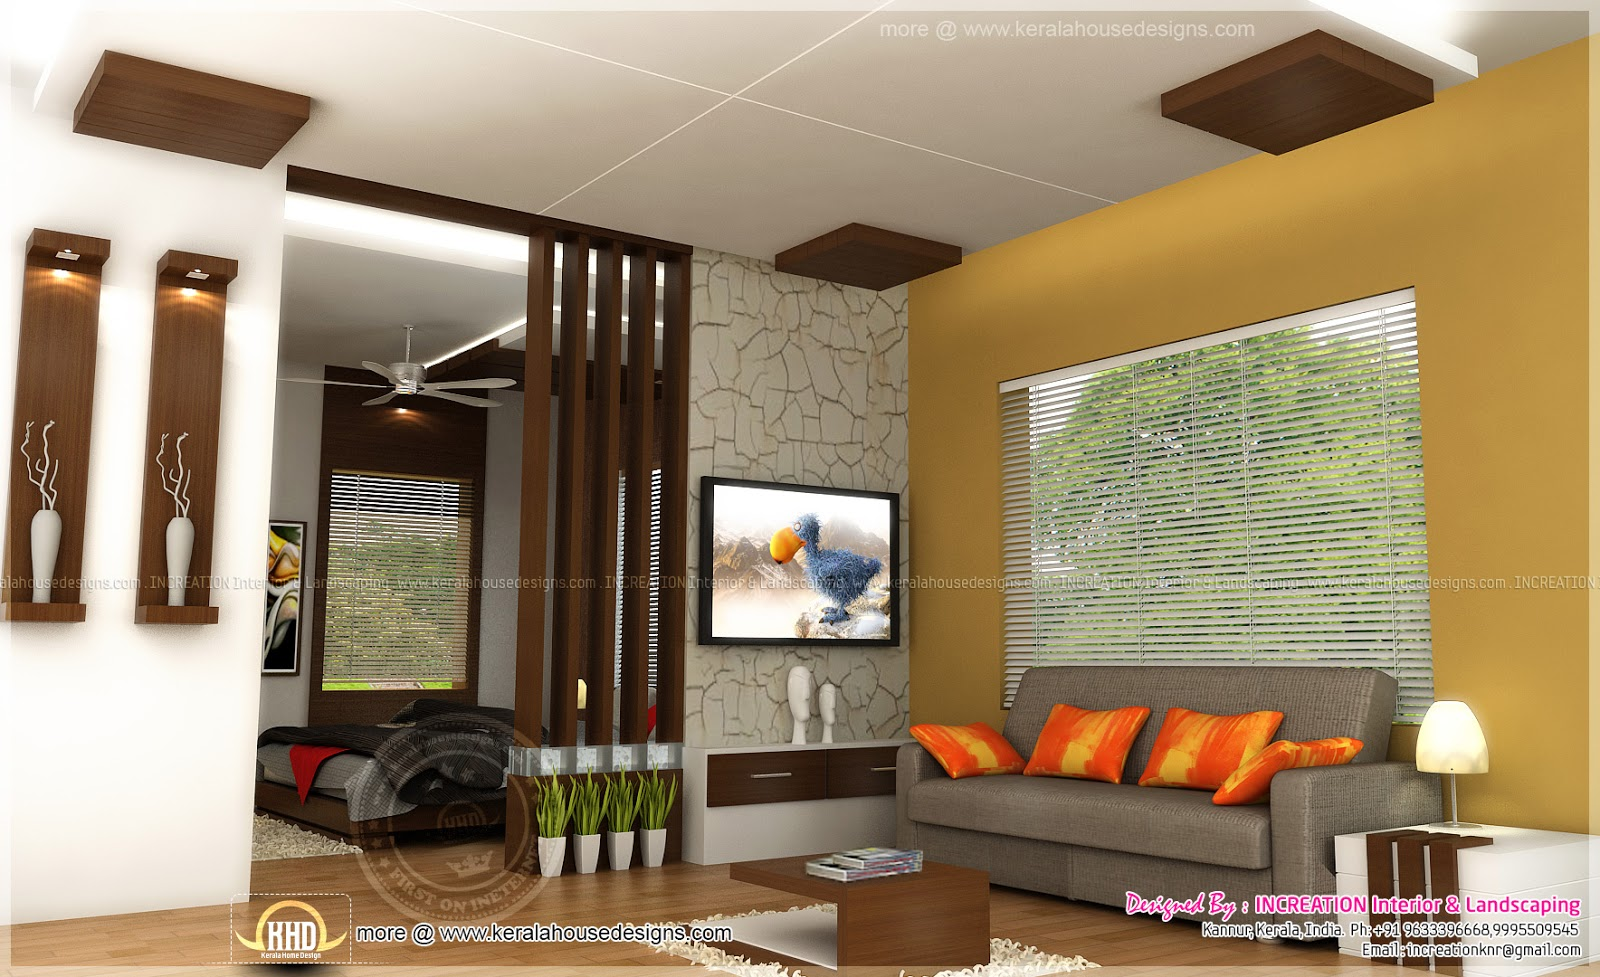 Interior designs from kannur kerala kerala home design for New room interior design